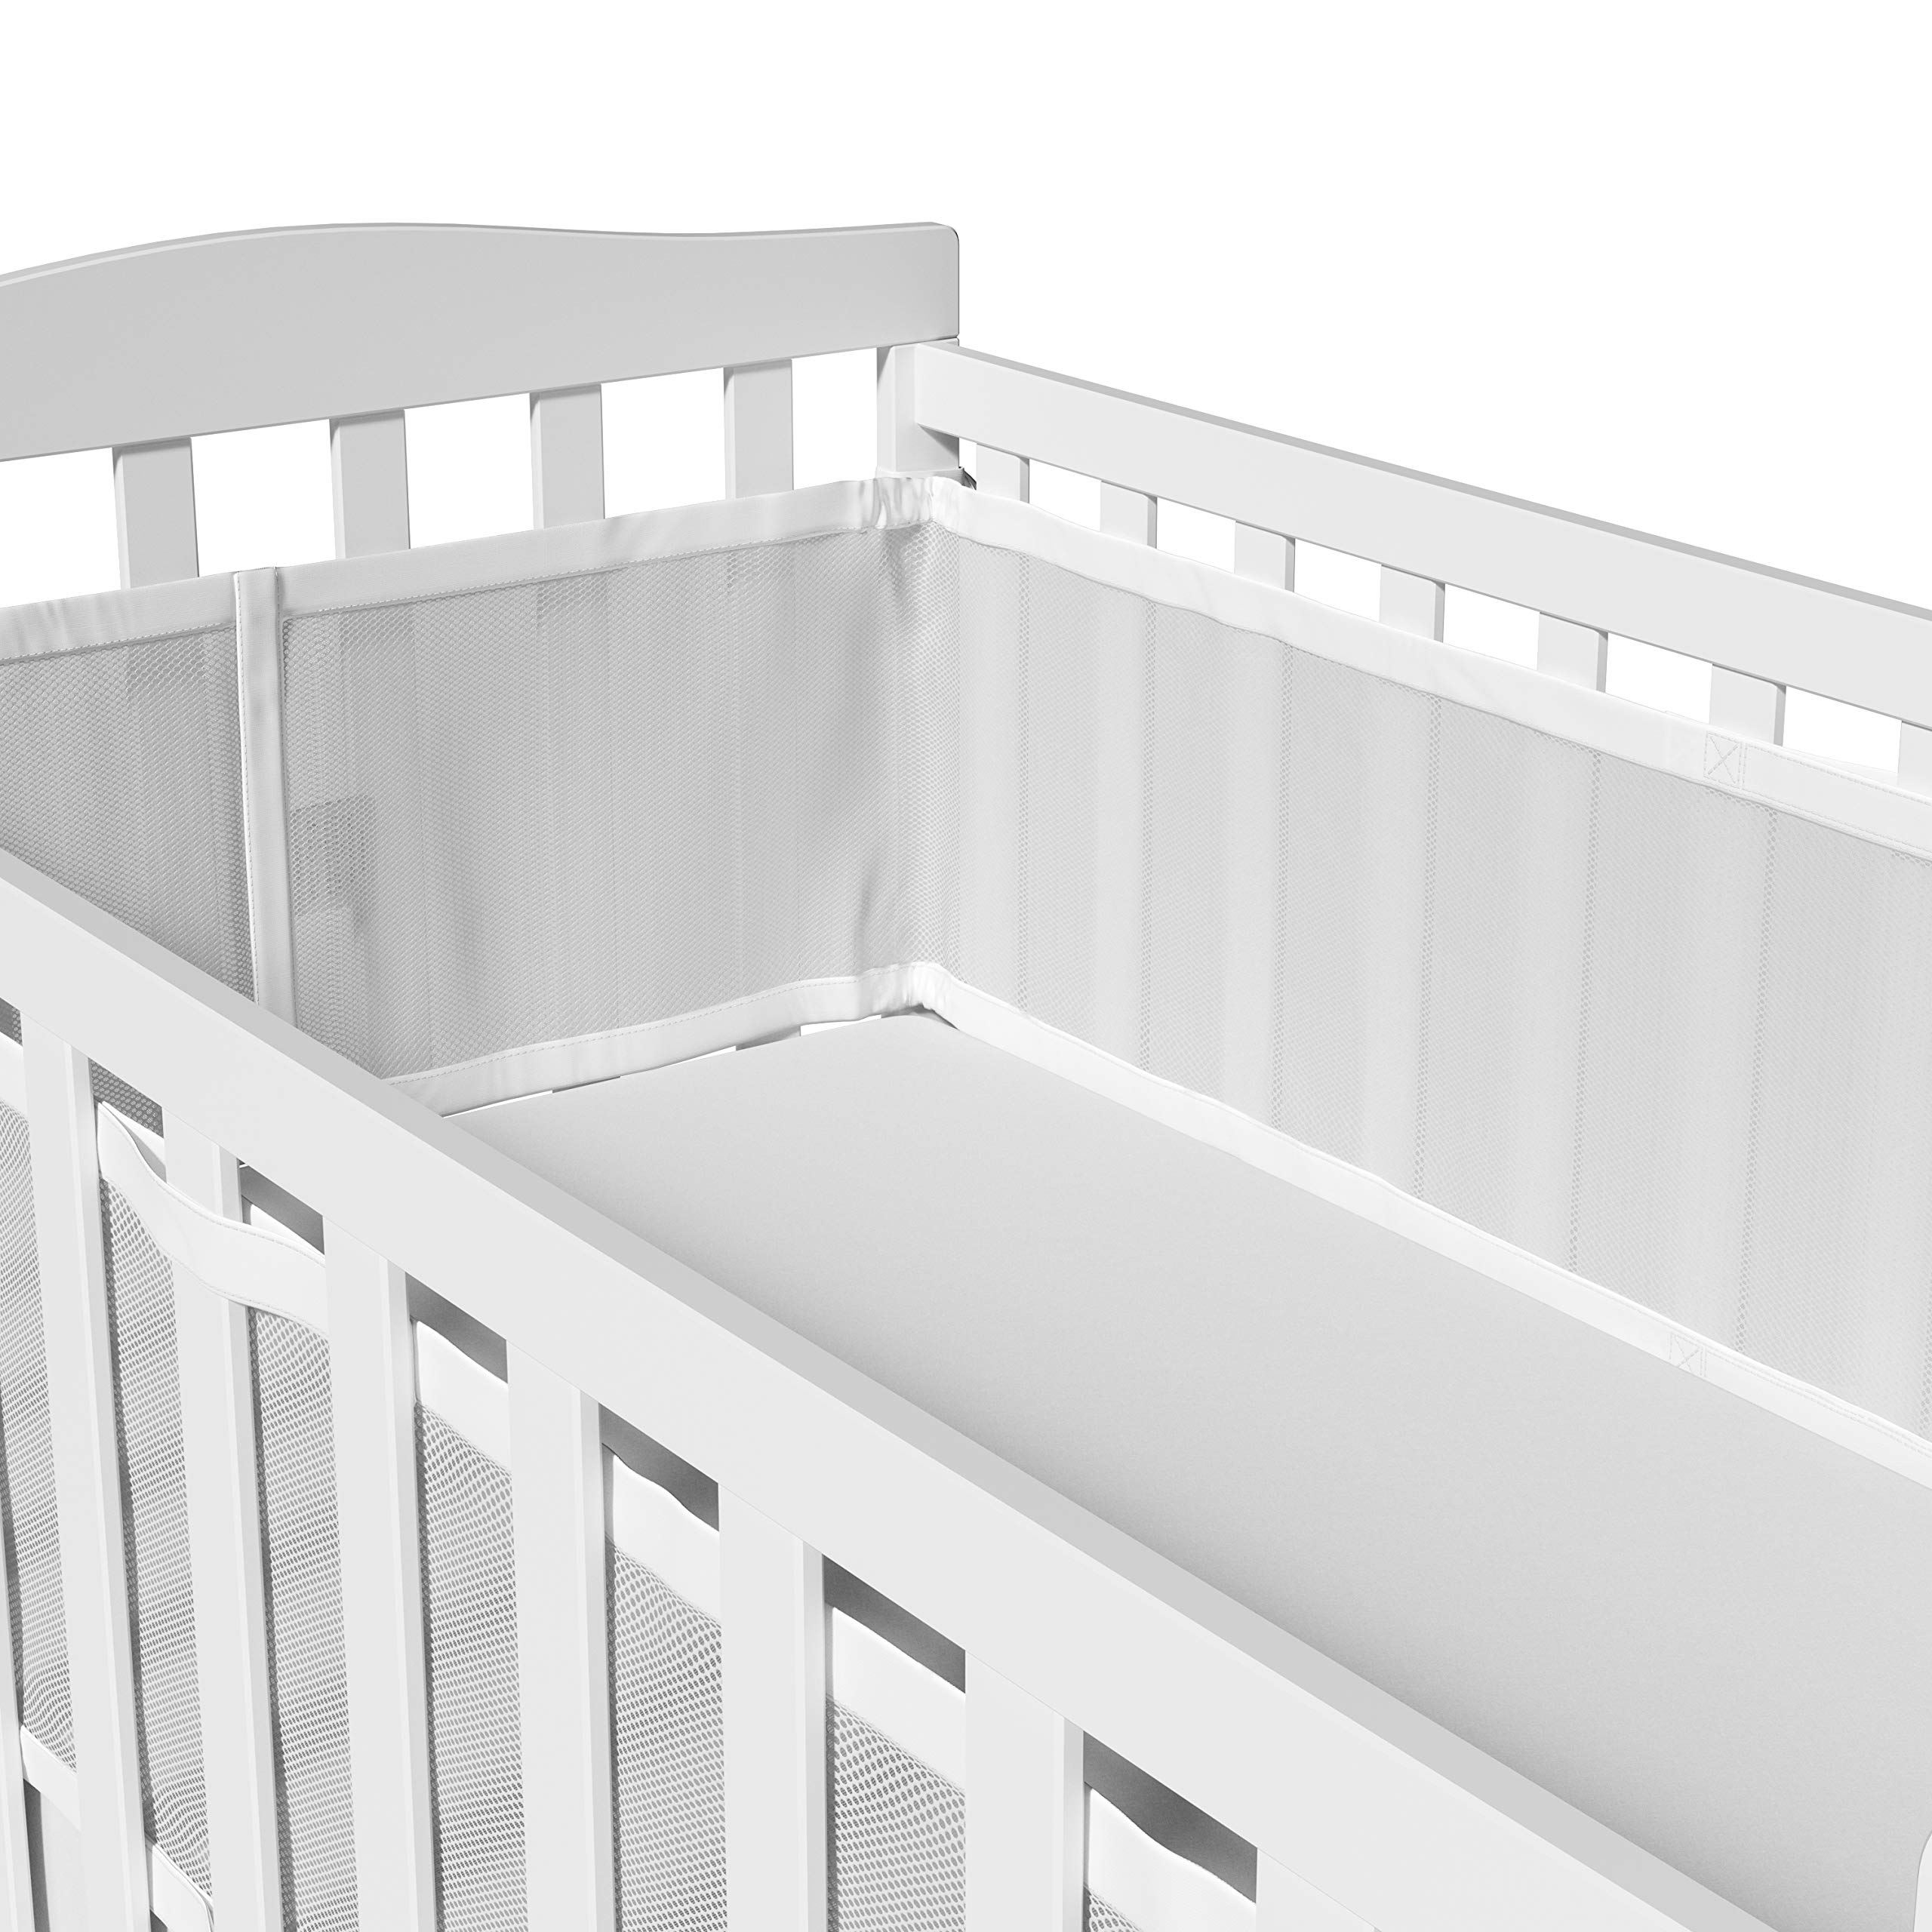 Breathable Crib Bumper White Mesh Crib Bumper for Full-Size Crib Breathable Mesh Crib Liner